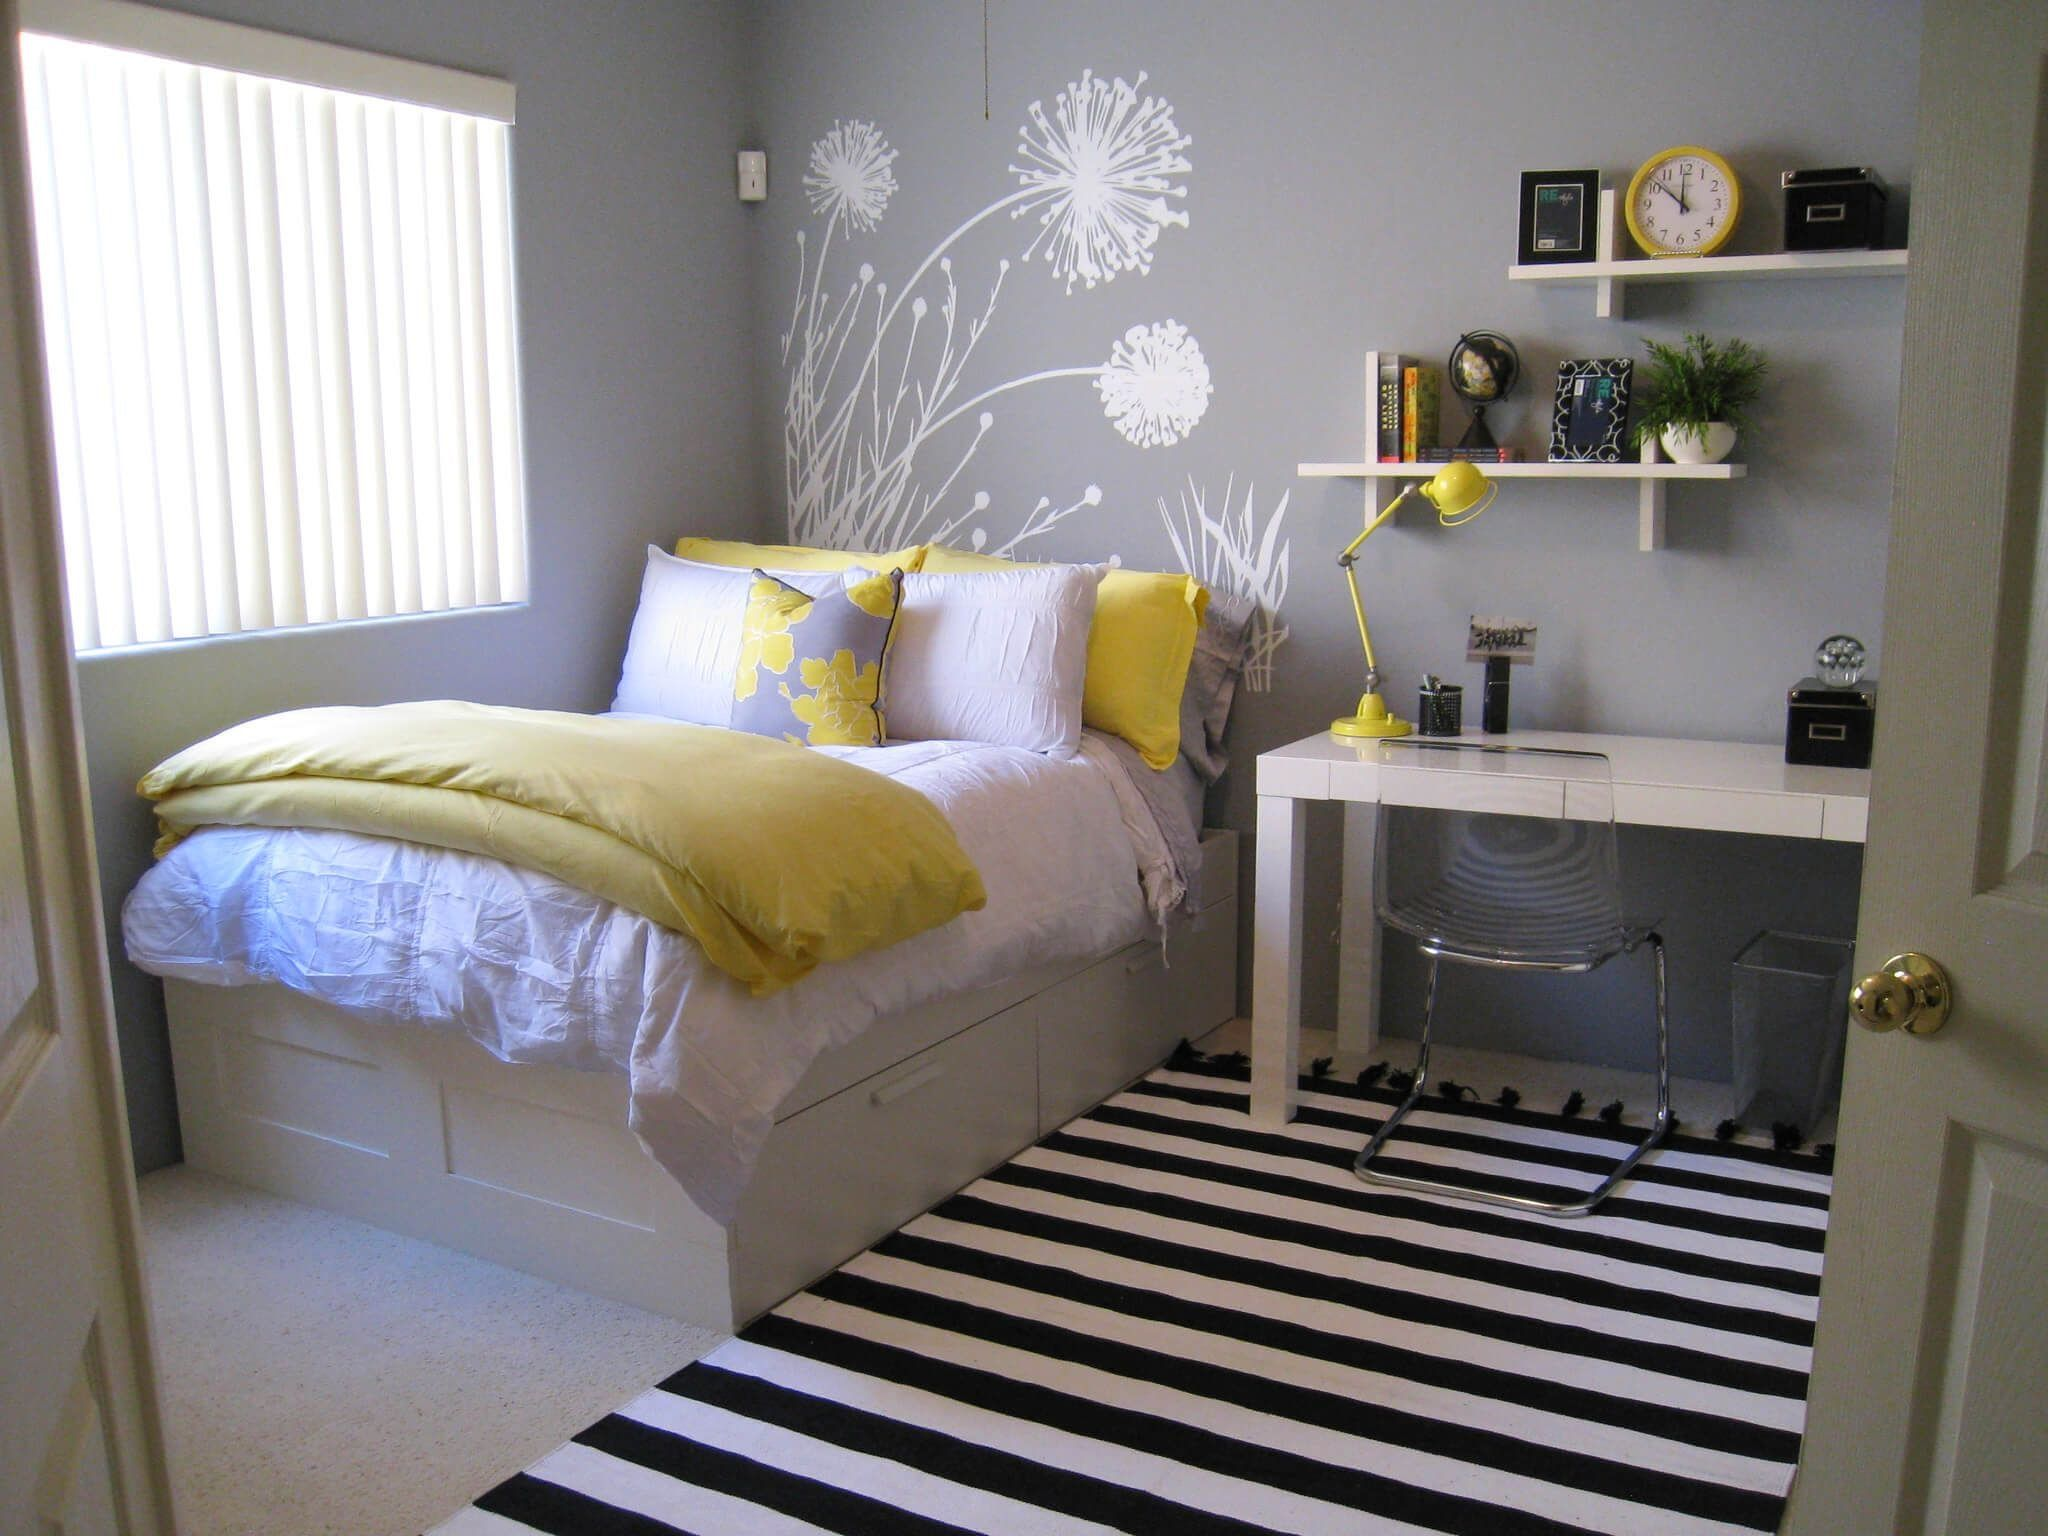 Small Bedroom Ideas, Small Bedroom Design, Small Bedroom Furniture, Small